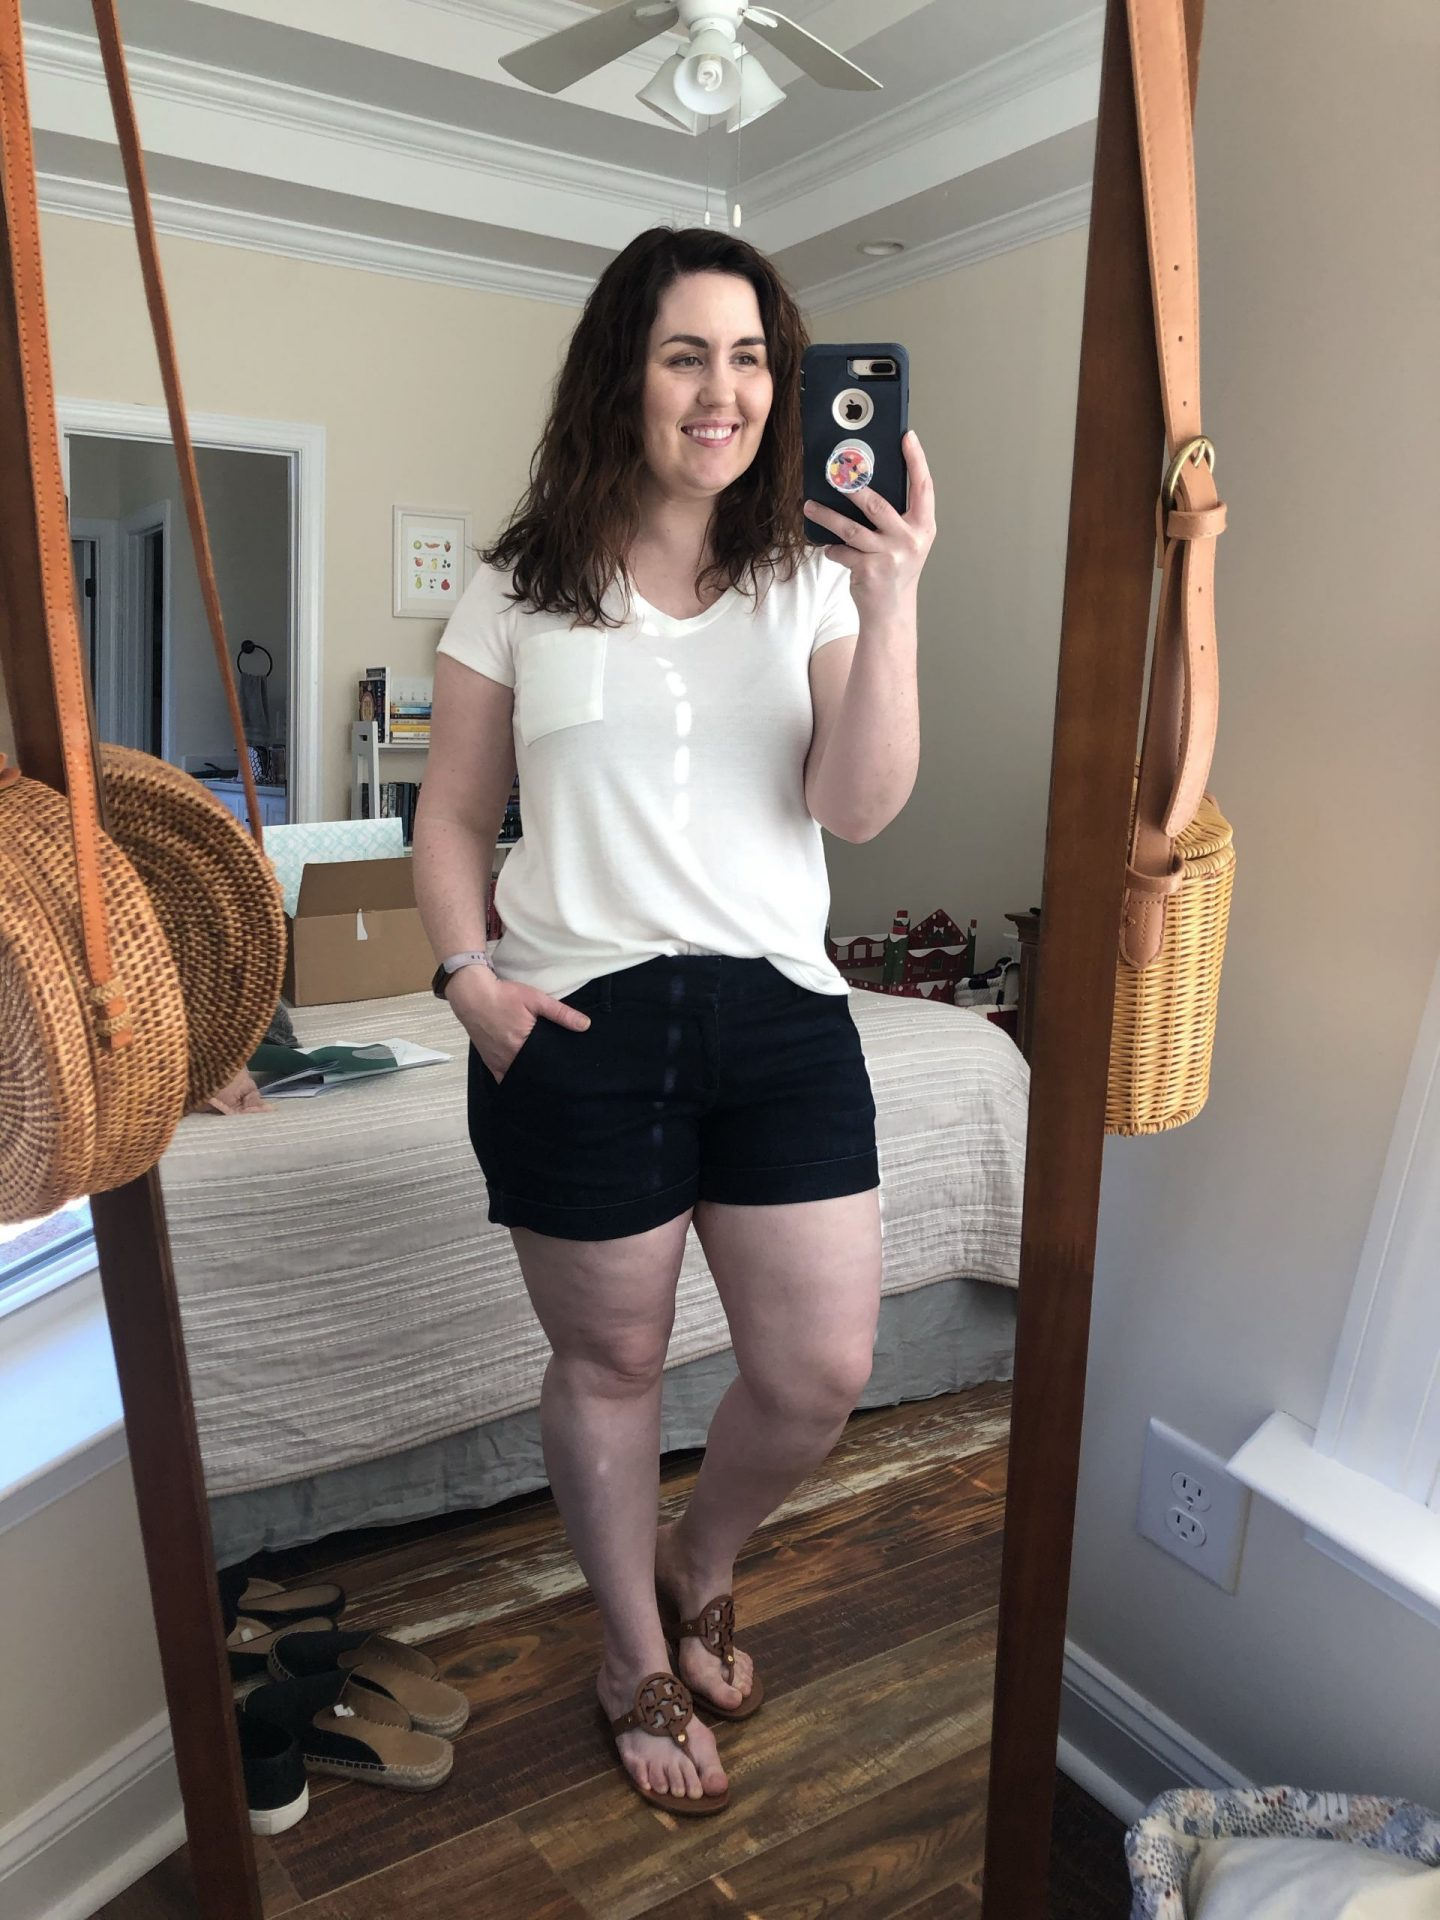 NC blogger Rebecca Lately shares her March 2020 Stitch Fix outfits. Are you already prepping for spring & summer? Come check out these cute summer outfits!